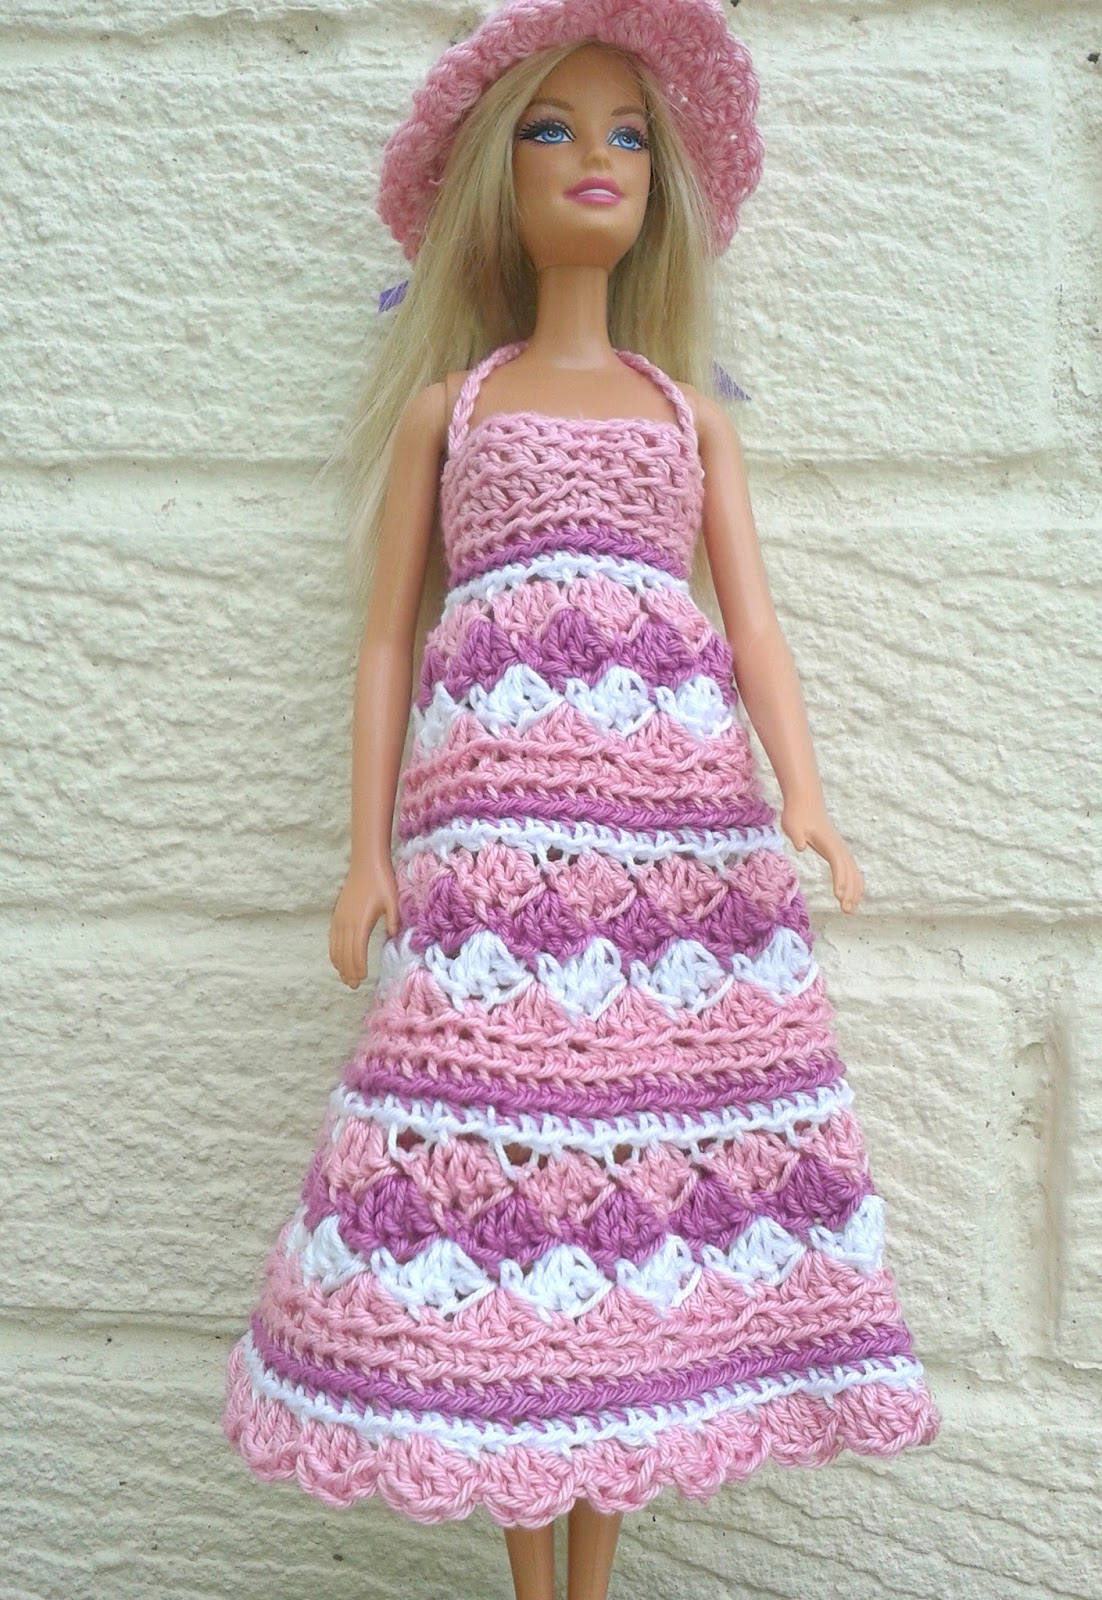 Linmary Knits: Barbie patterns